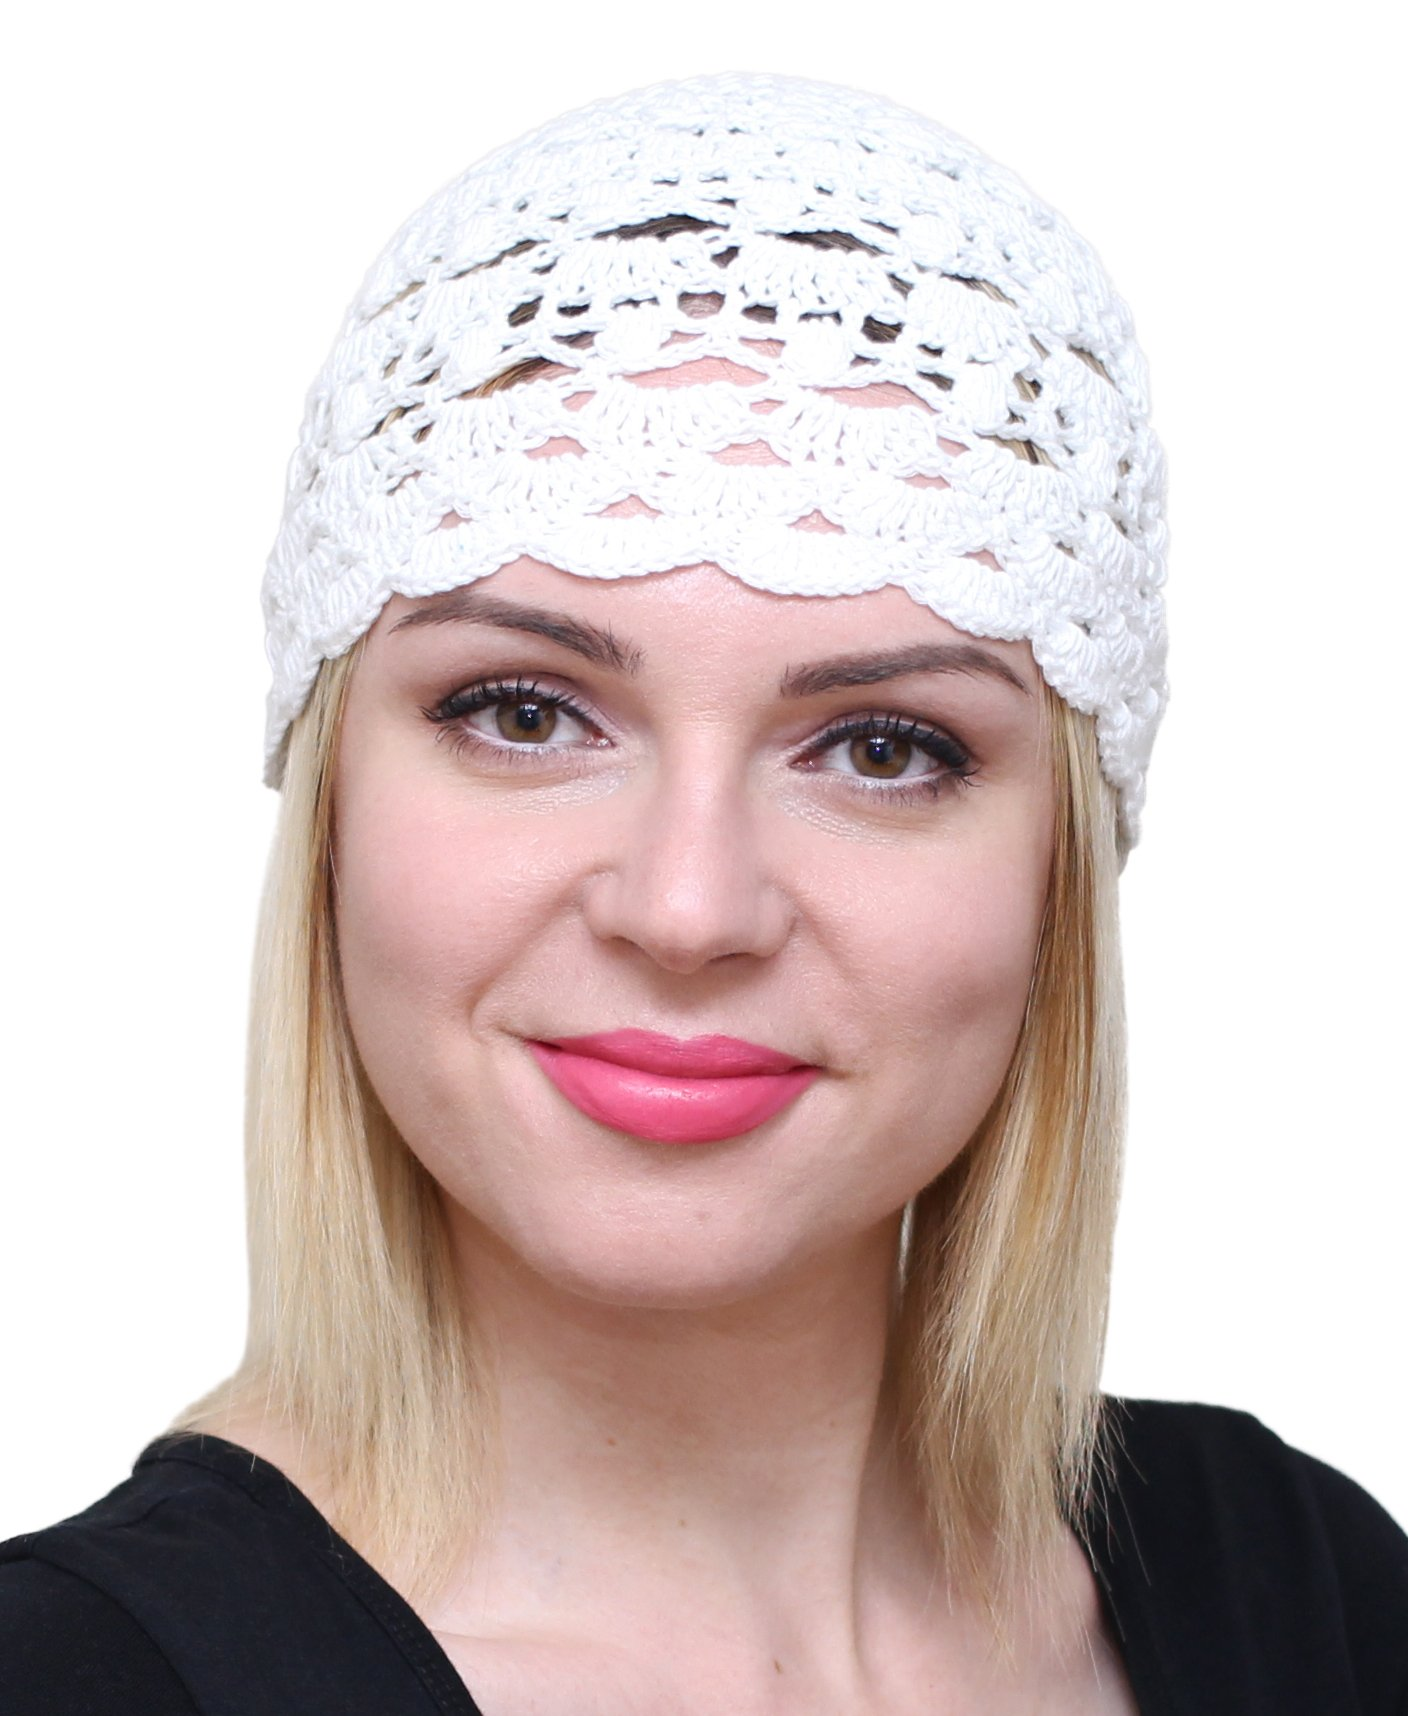 NFB Fascinator Hats for Women Ladies Summer Beanie Cotton Cloche Crochet caps (White)